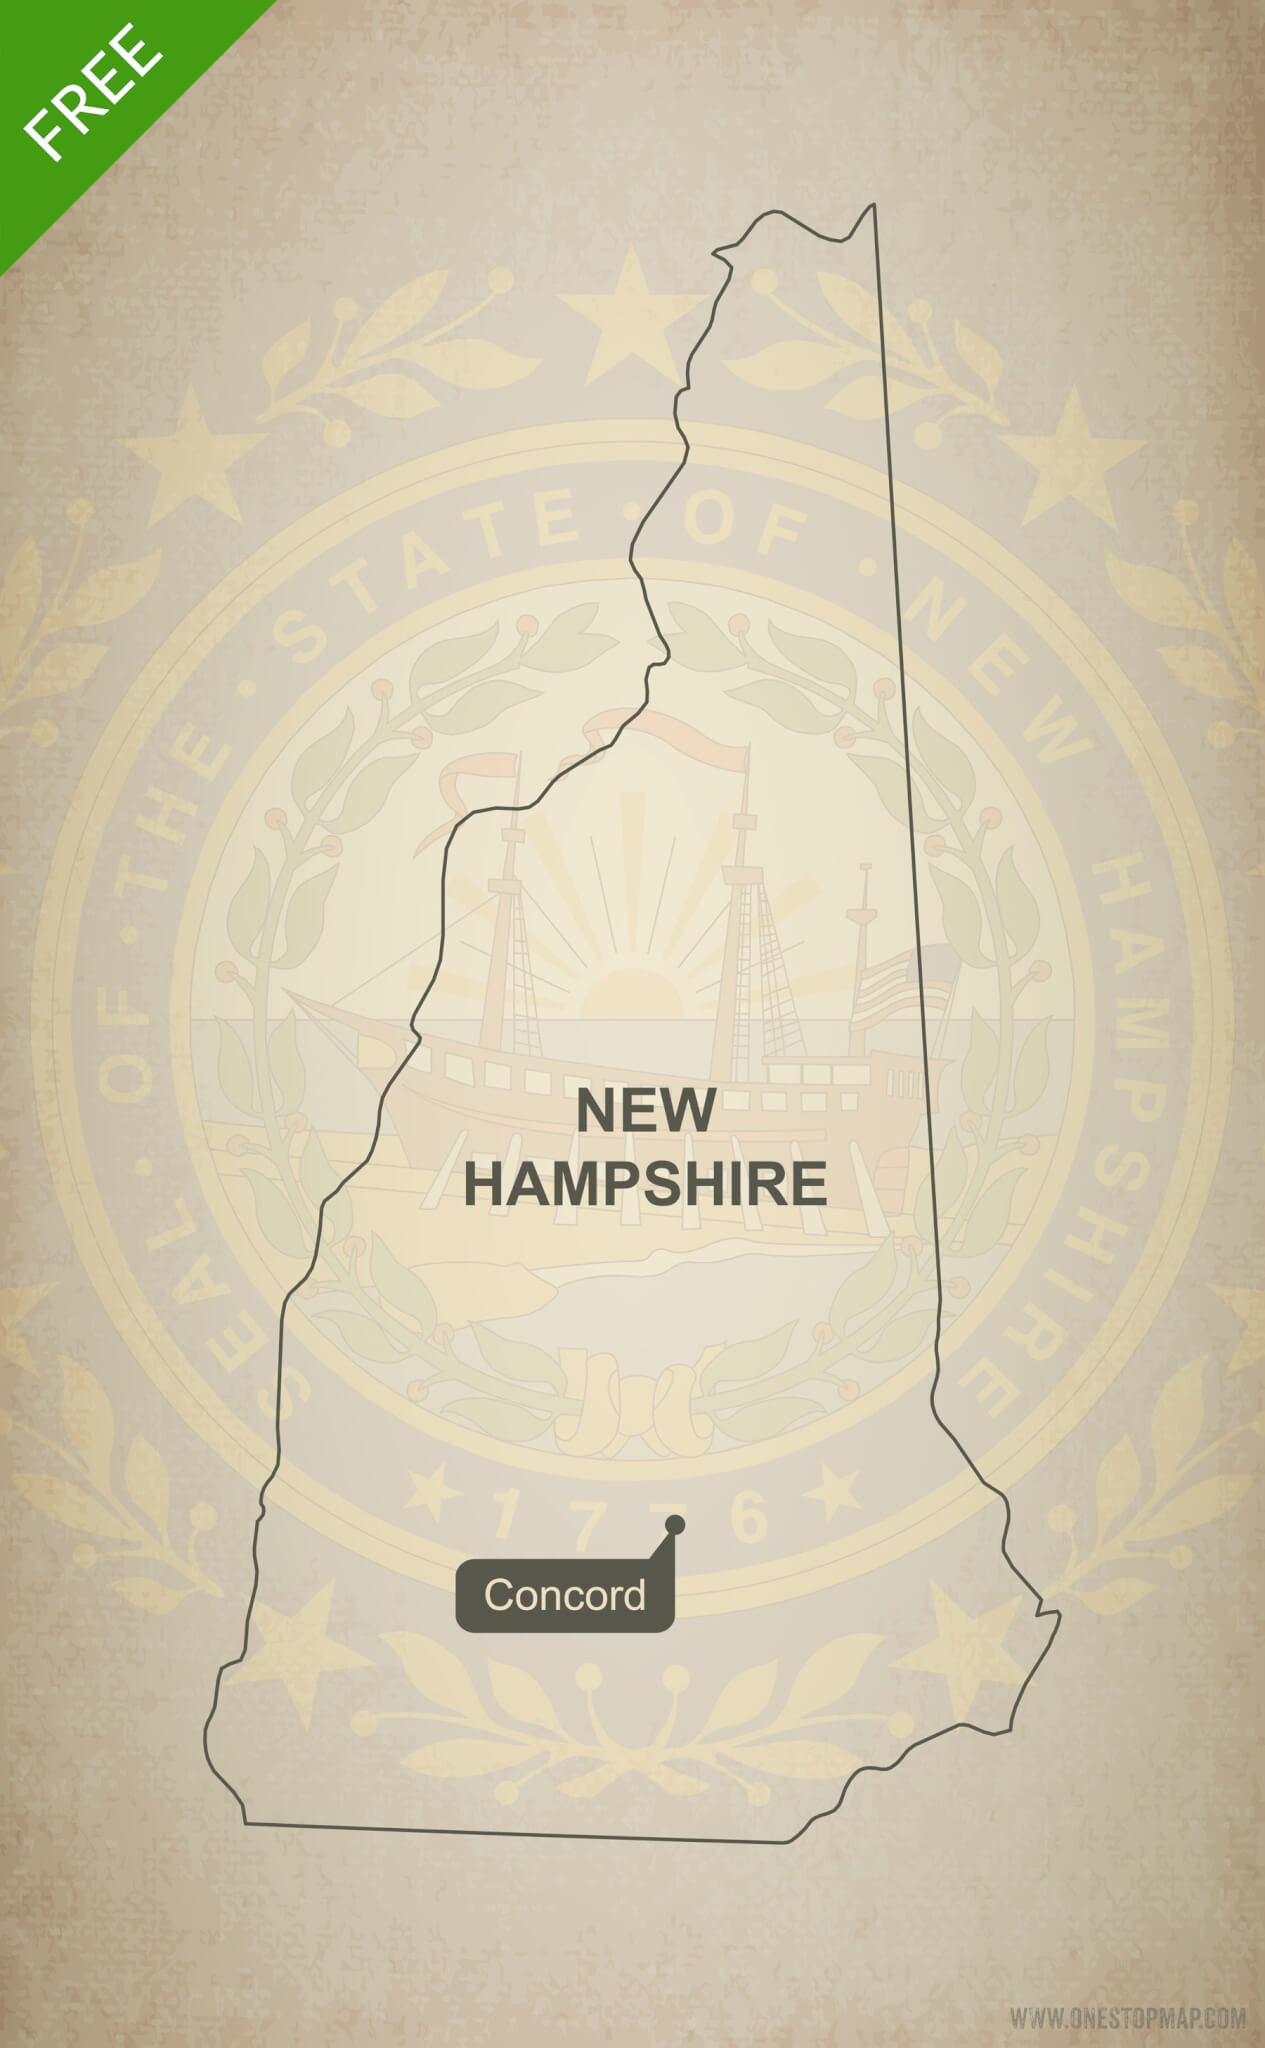 New Hampshire On Map Of Usa.Free Vector Map Of New Hampshire Outline One Stop Map